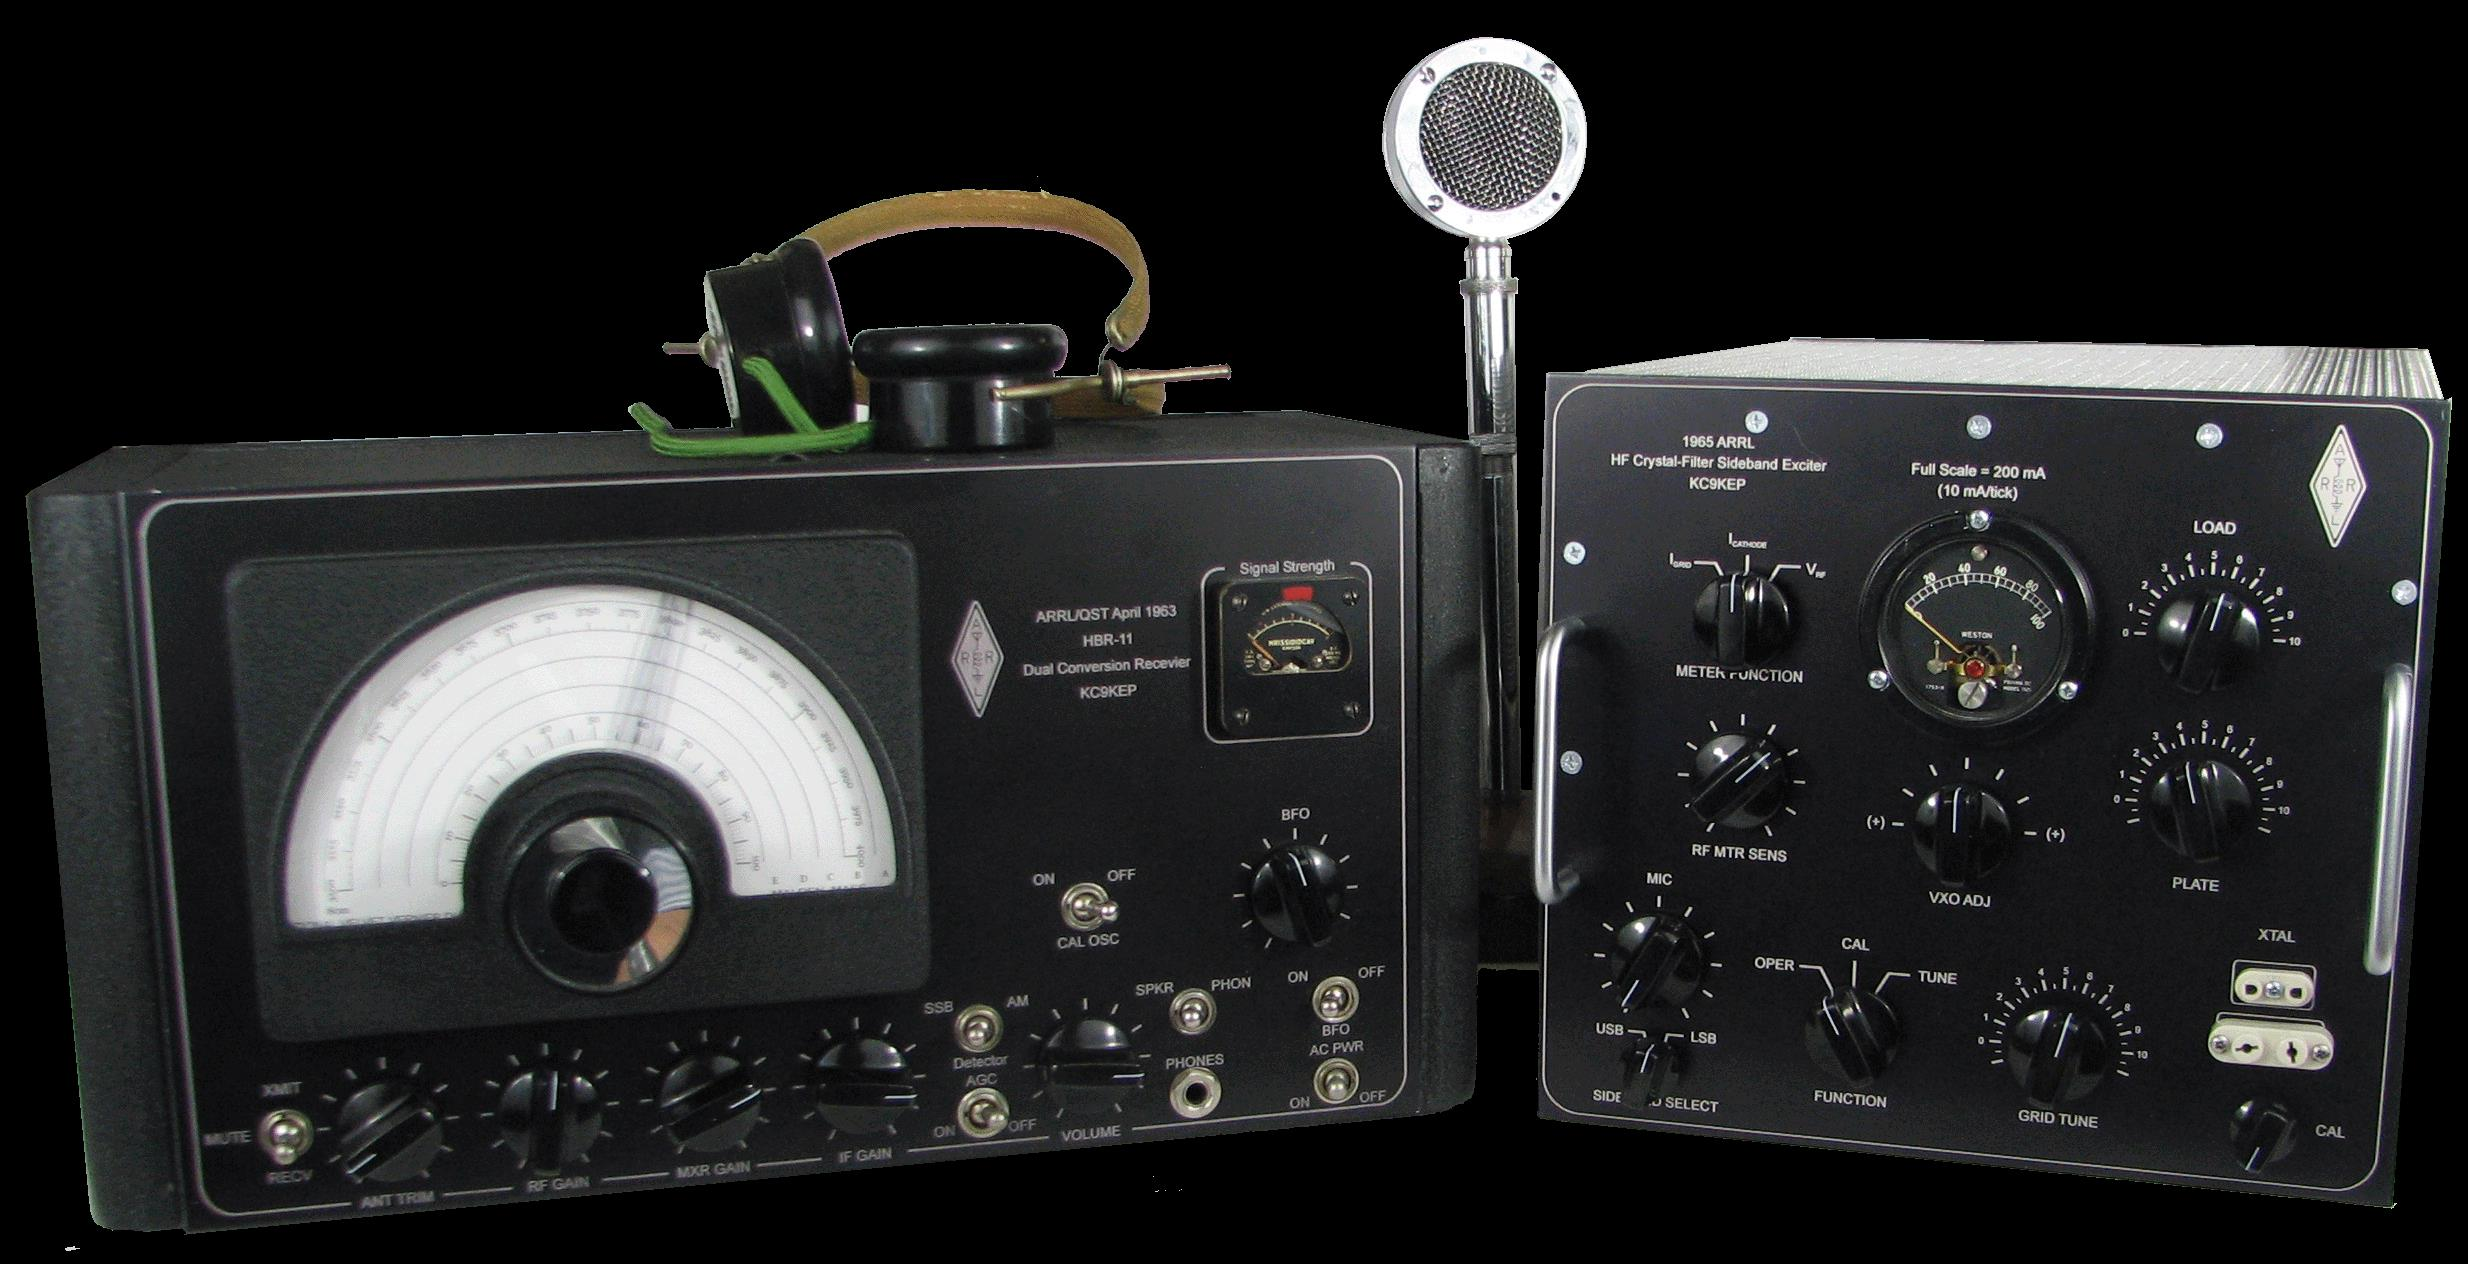 HBR-11 and 1962 ARRL HF Crystal Filter SSB Transceiver